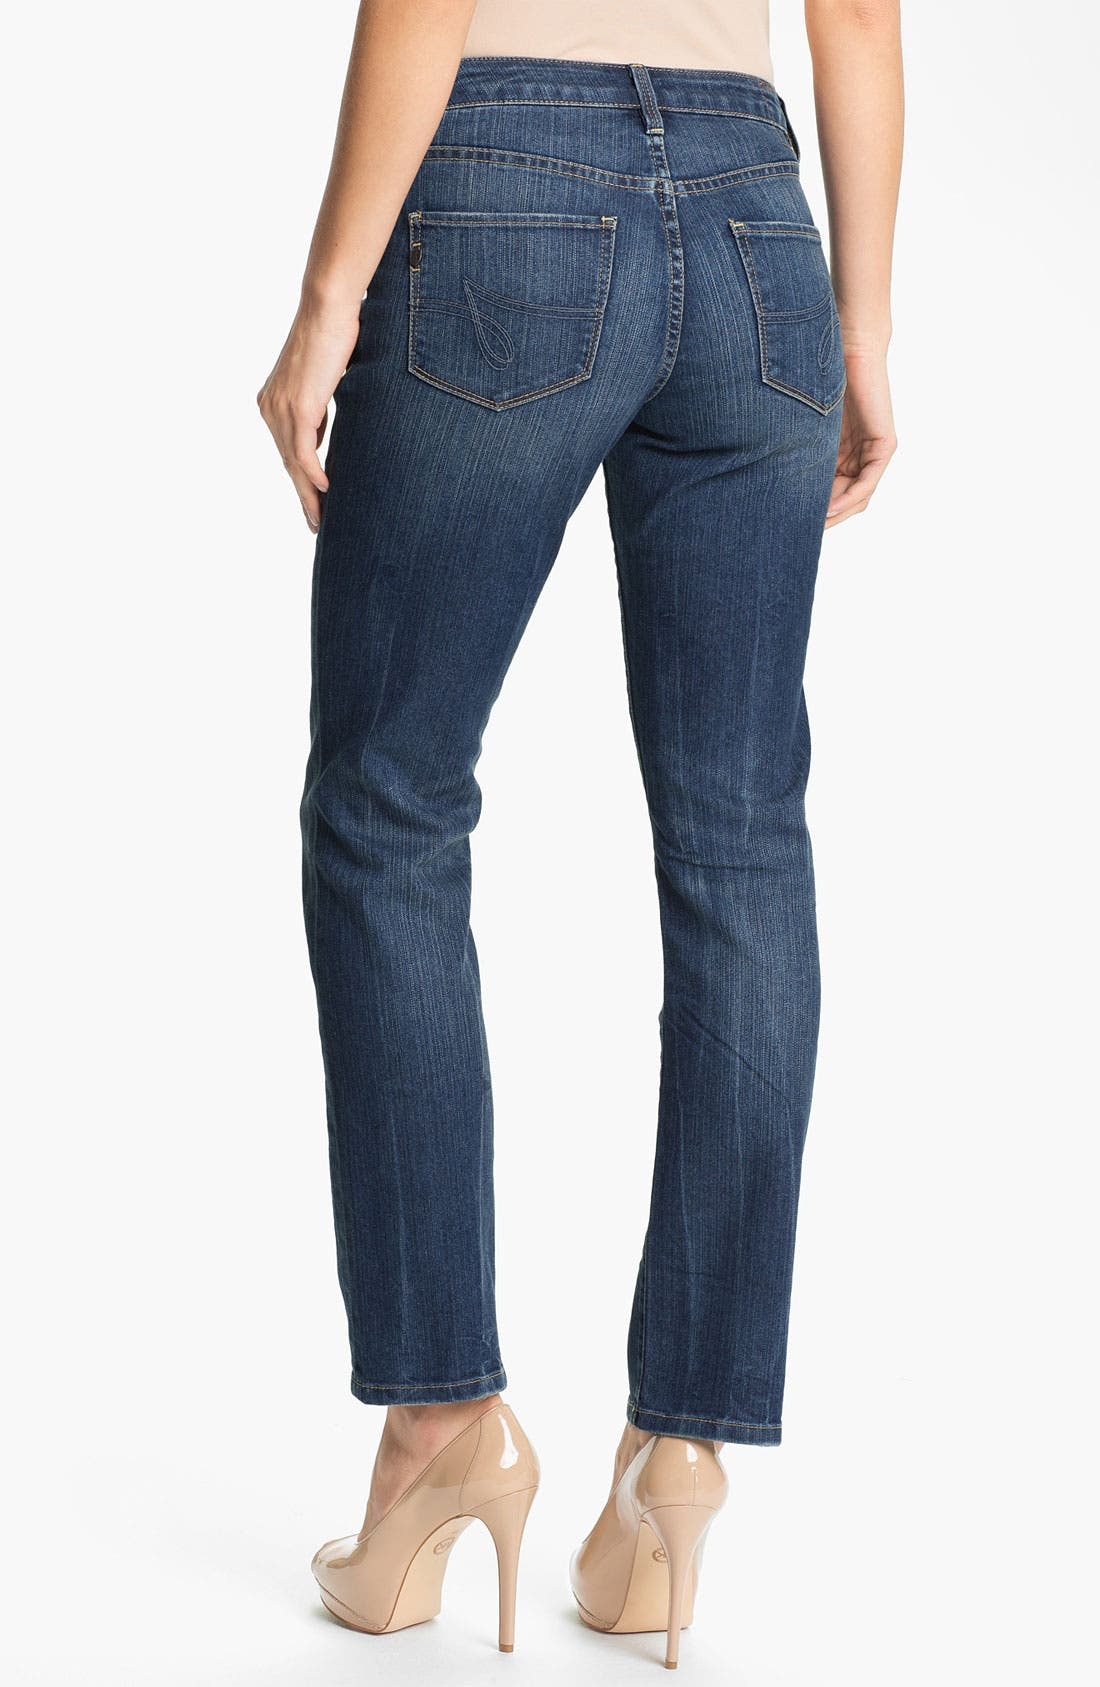 Alternate Image 2  - Jag Jeans 'Lucy' Bootcut Stretch Jeans (Blue Raven) (Petite)